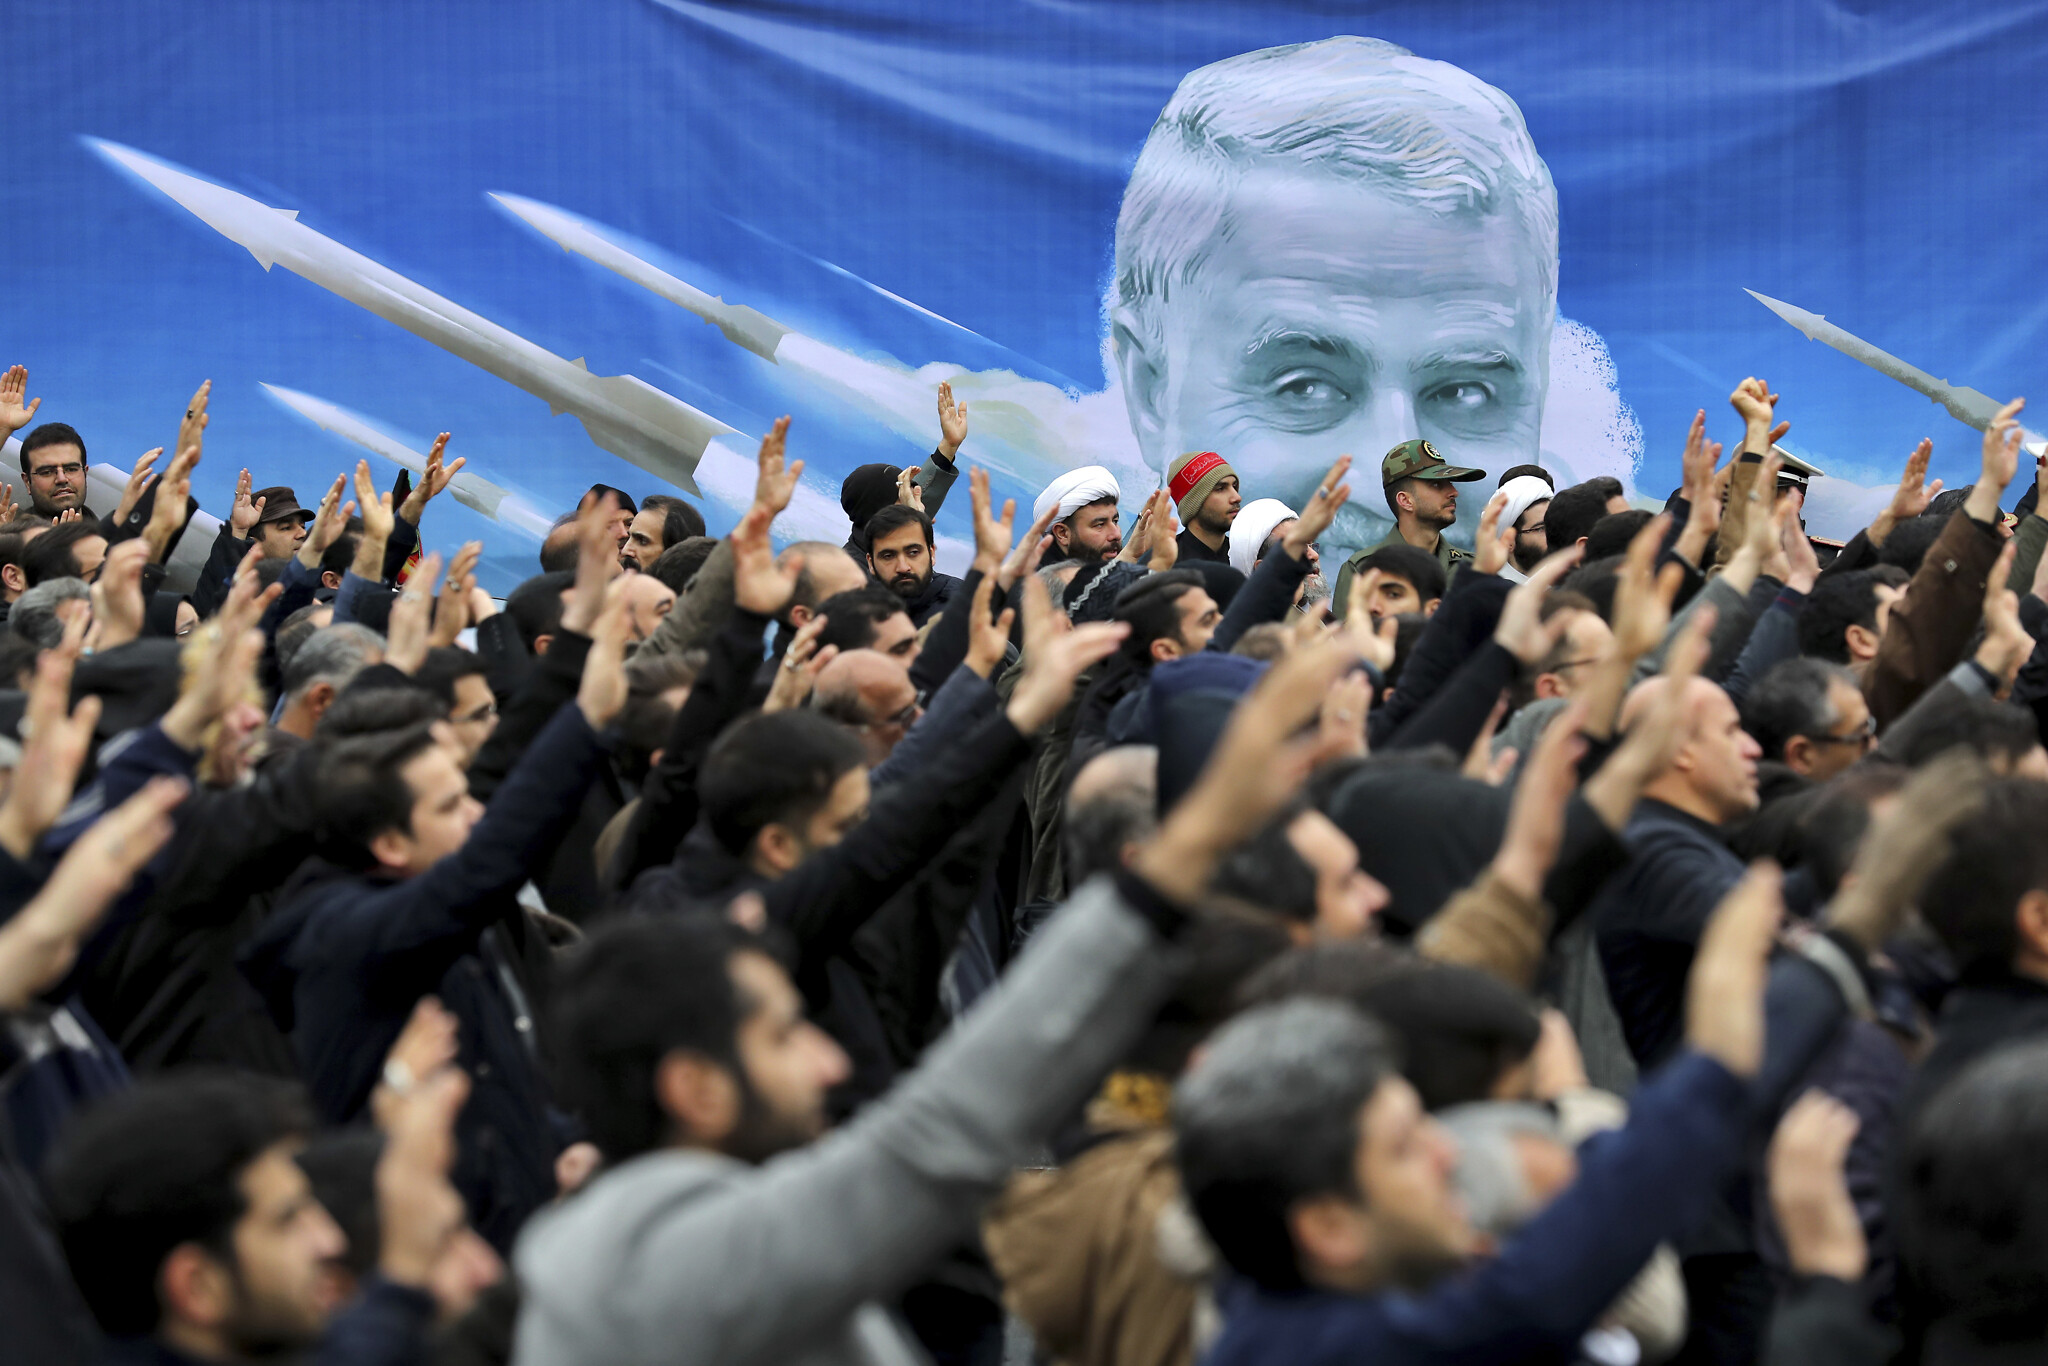 Funeral of Iran's Soleimani postponed after dozens killed in stampede